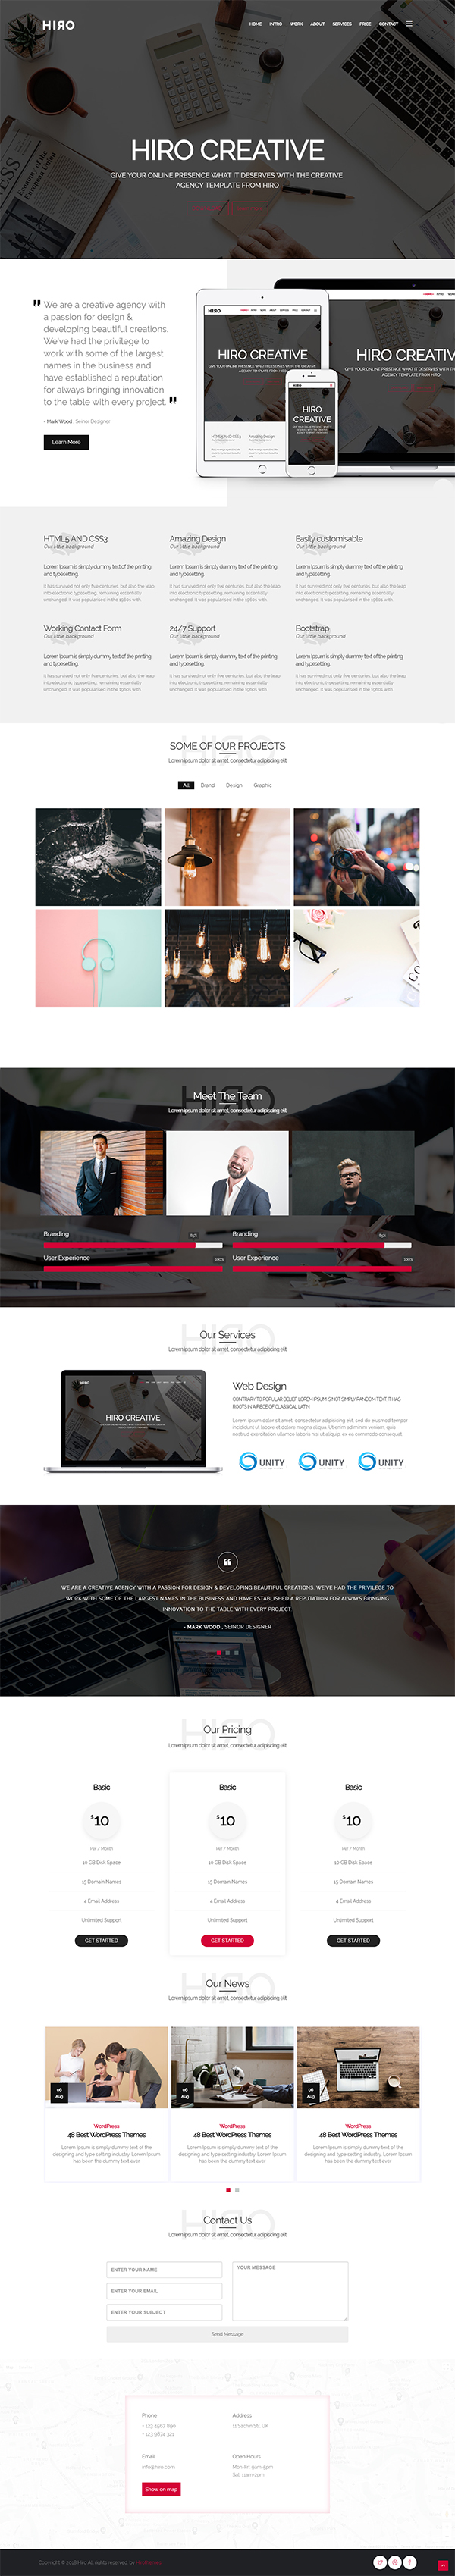 Hiro - Creative agency HTML5 Template